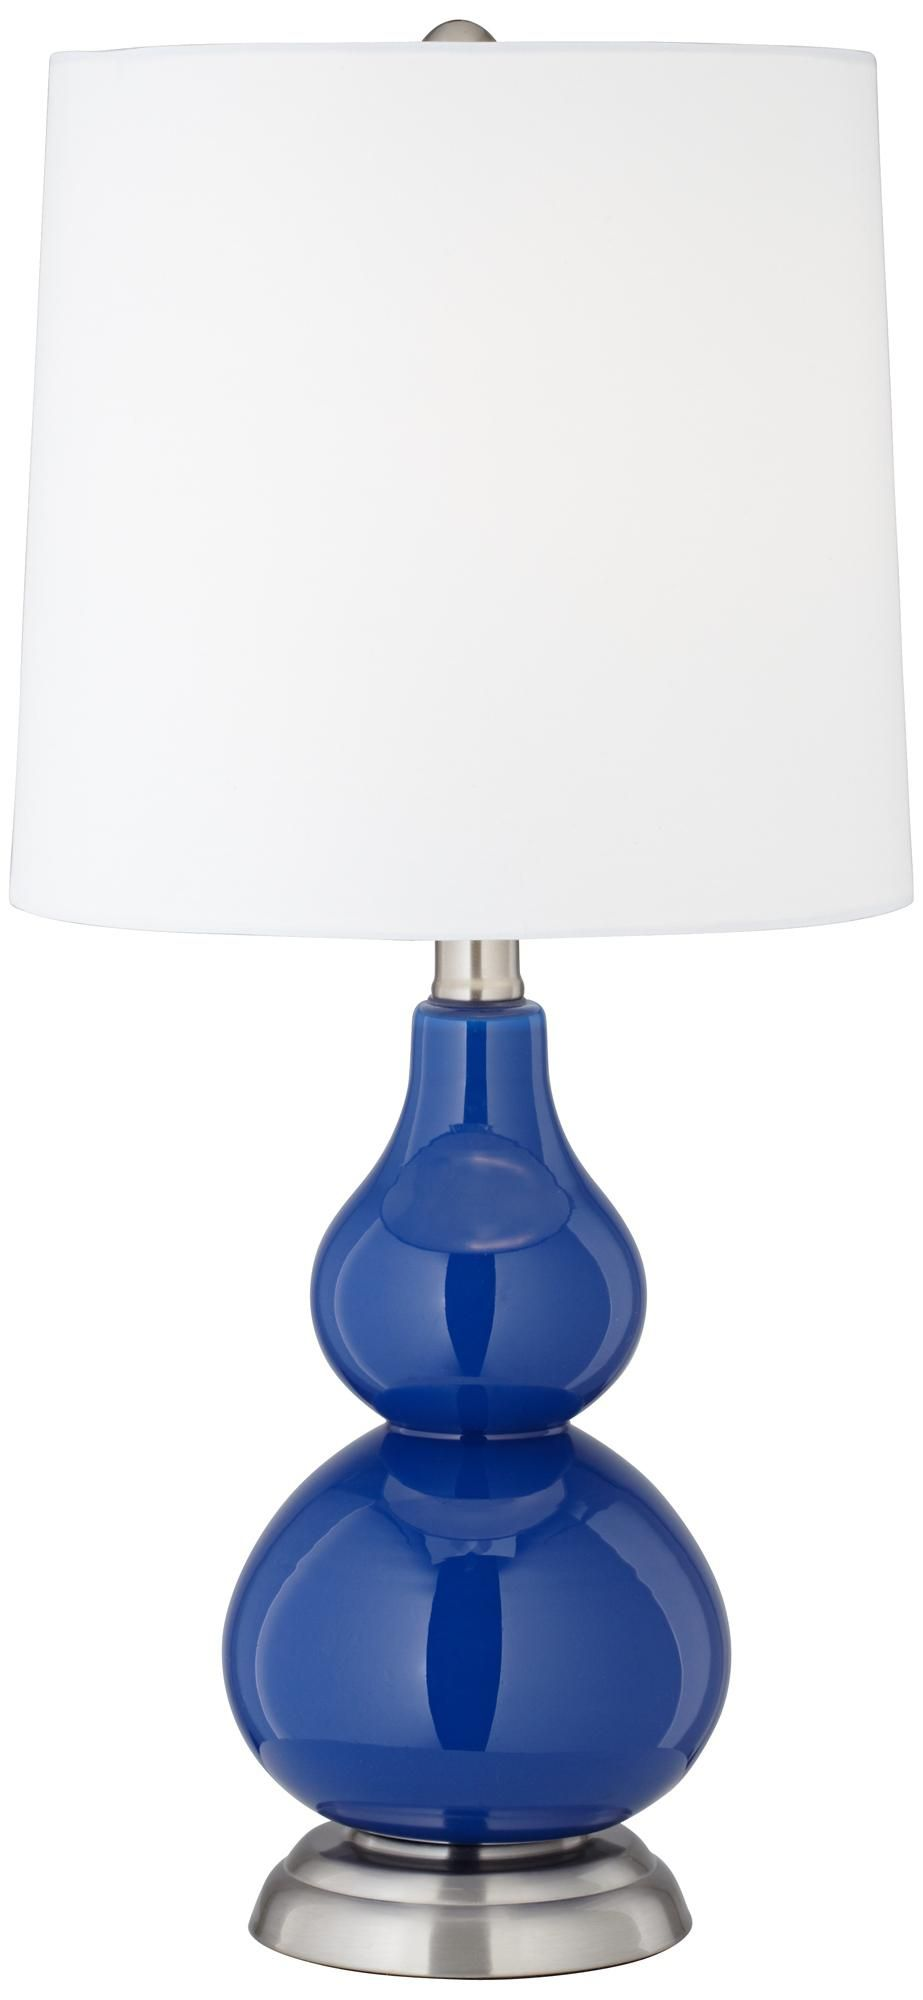 Royal blue small gourd accent table lamp my first employee royal blue small gourd accent table lamp my first employee purchase couldnt geotapseo Choice Image